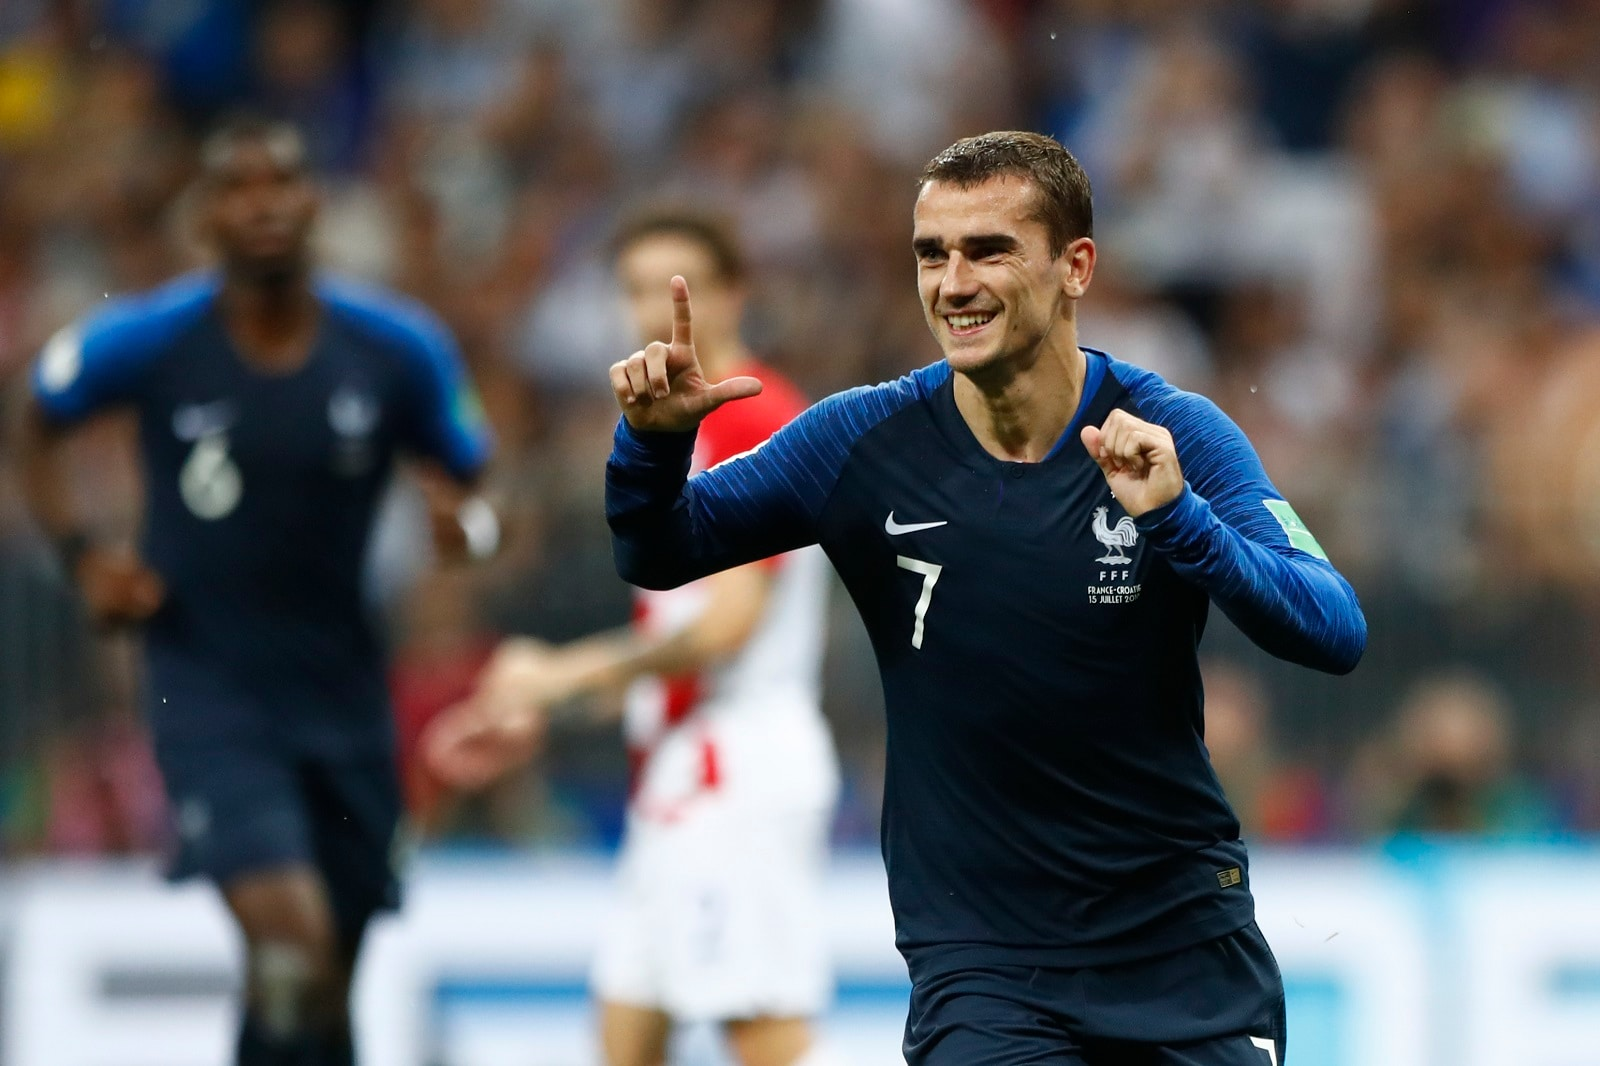 France's Antoine Griezmann, right, celebrates after scoring a penalty kick during the final match between France and Croatia at the 2018 soccer World Cup in the Luzhniki Stadium in Moscow, Russia, Sunday, July 15, 2018. (AP Photo/Matthias Schrader)